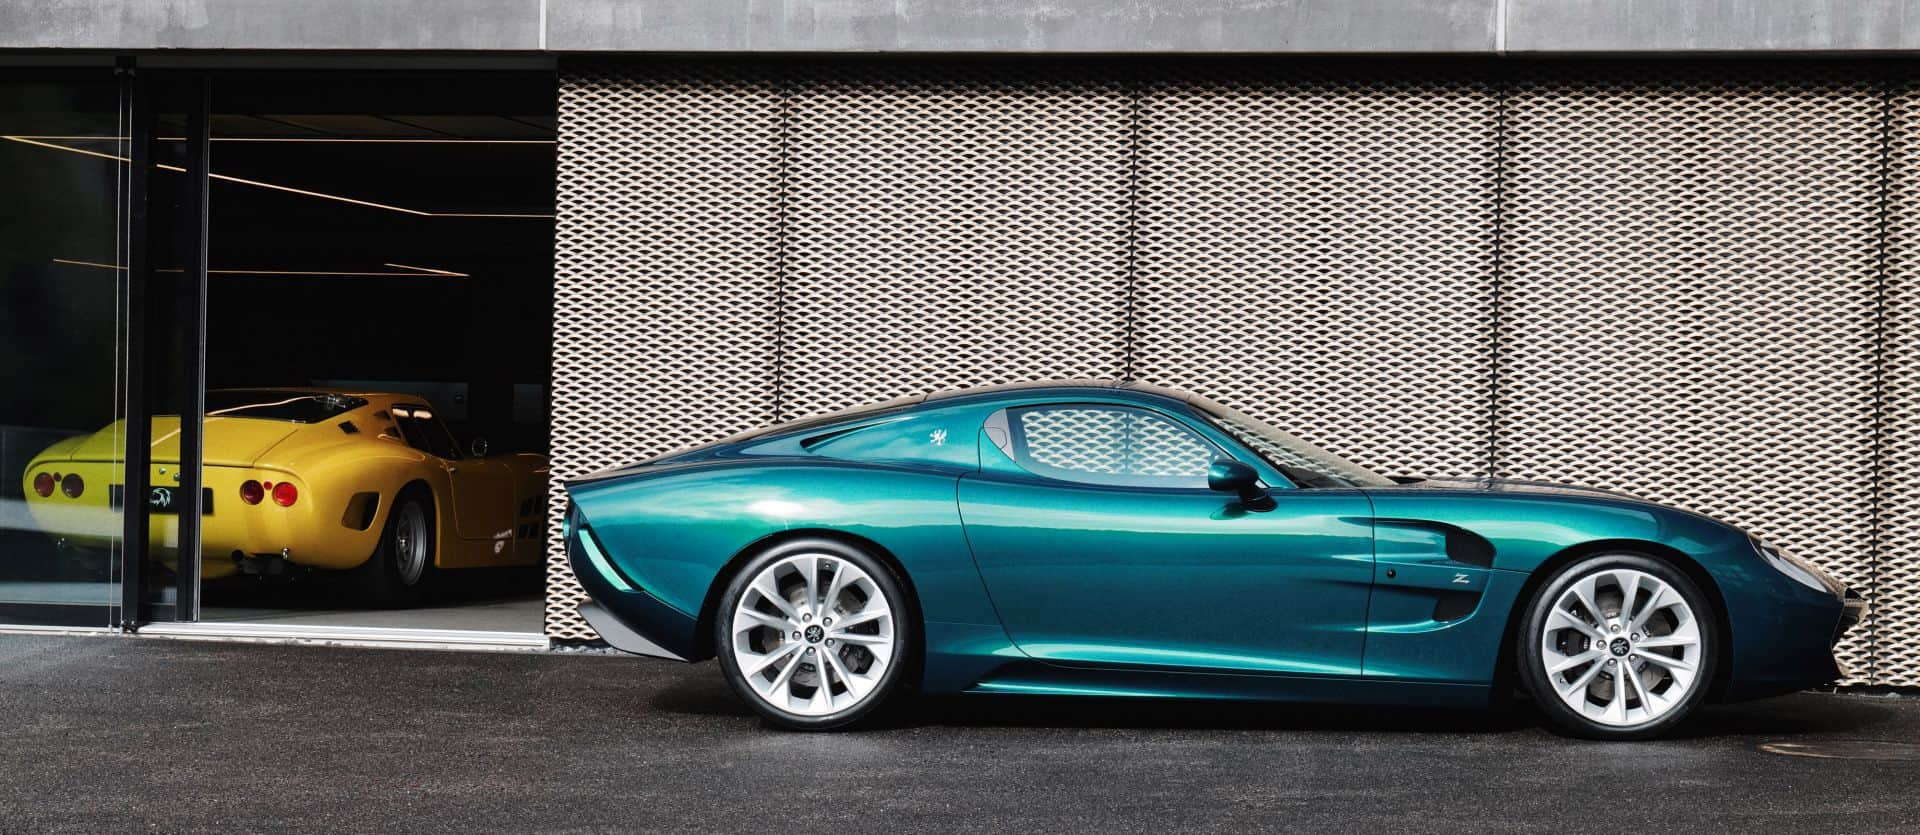 Zagato's First Iso Rivolta GTZ Looks Absolutely Incredible!